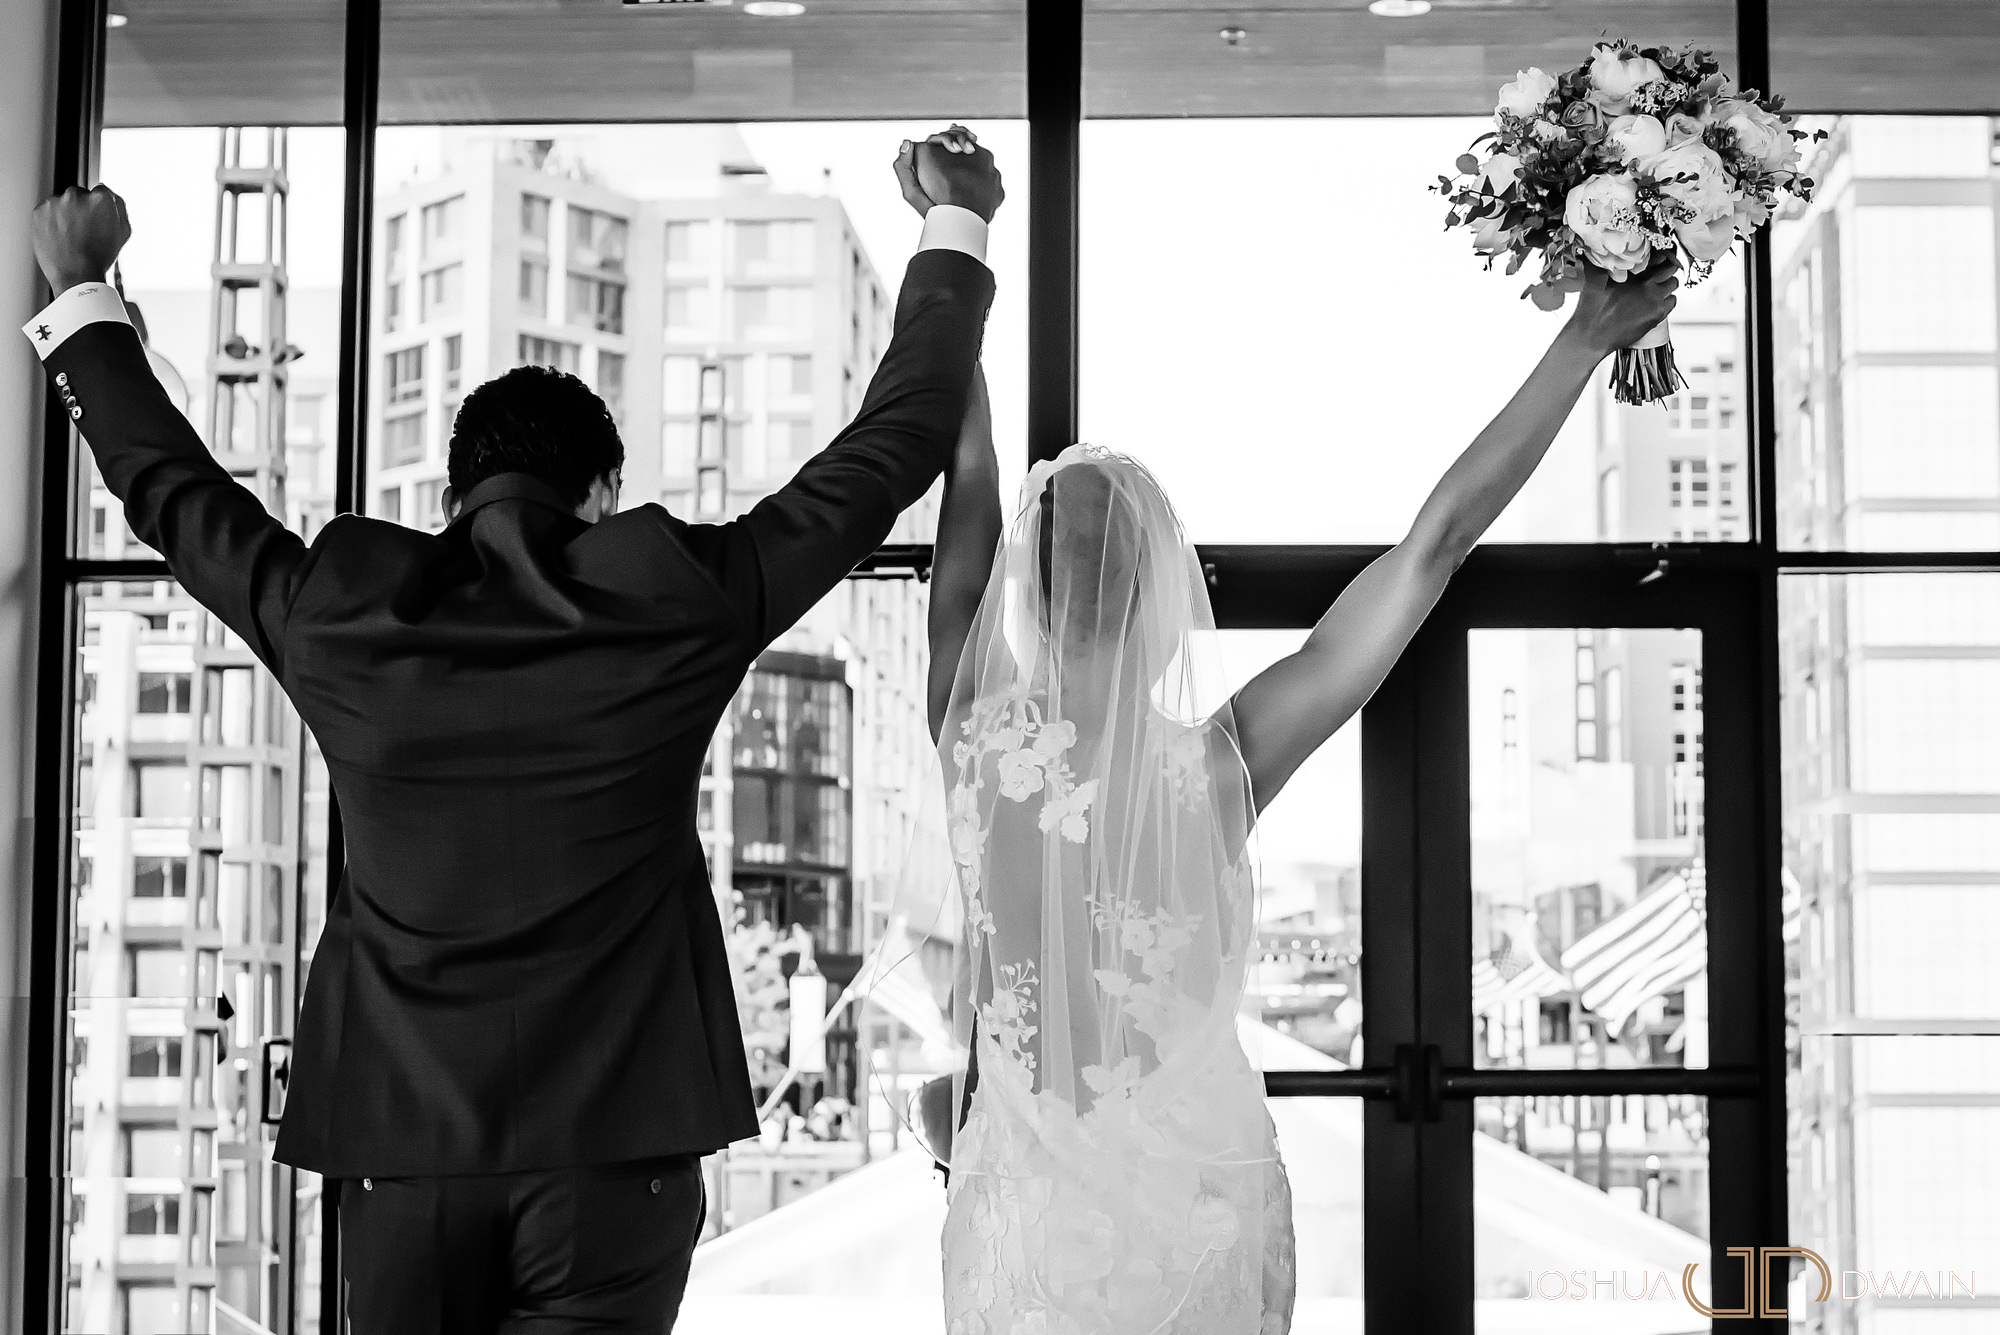 leshia-adam-024-dc-wharf-wedding-photos-joshua-dwain-photographer